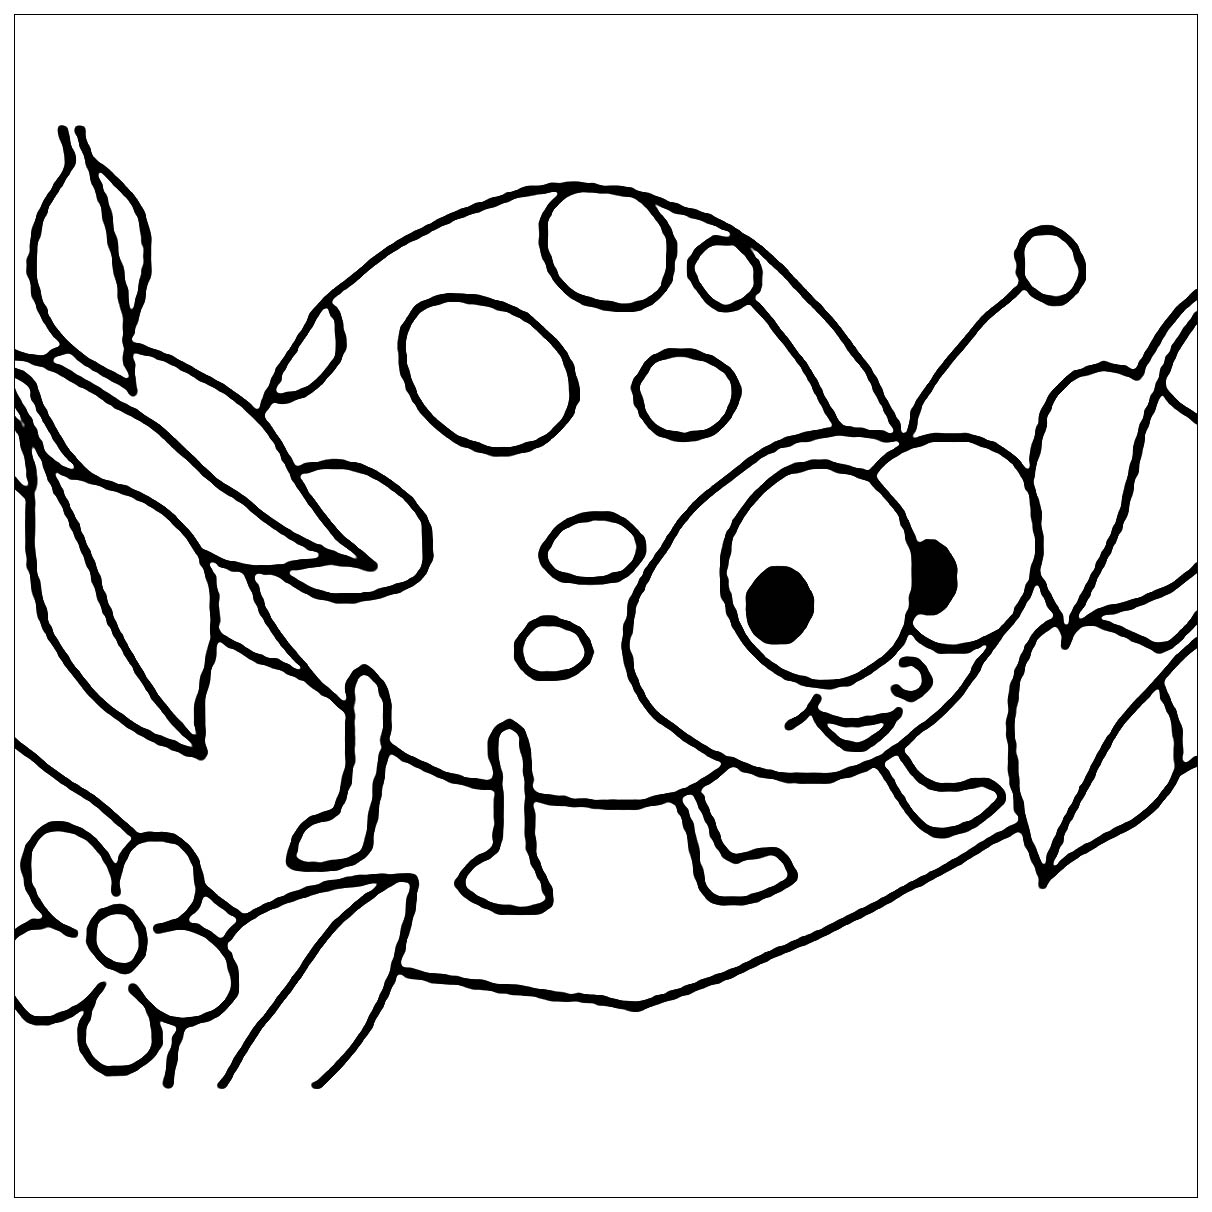 bug coloring pages printable bug coloring pages for kids cool2bkids coloring pages bug